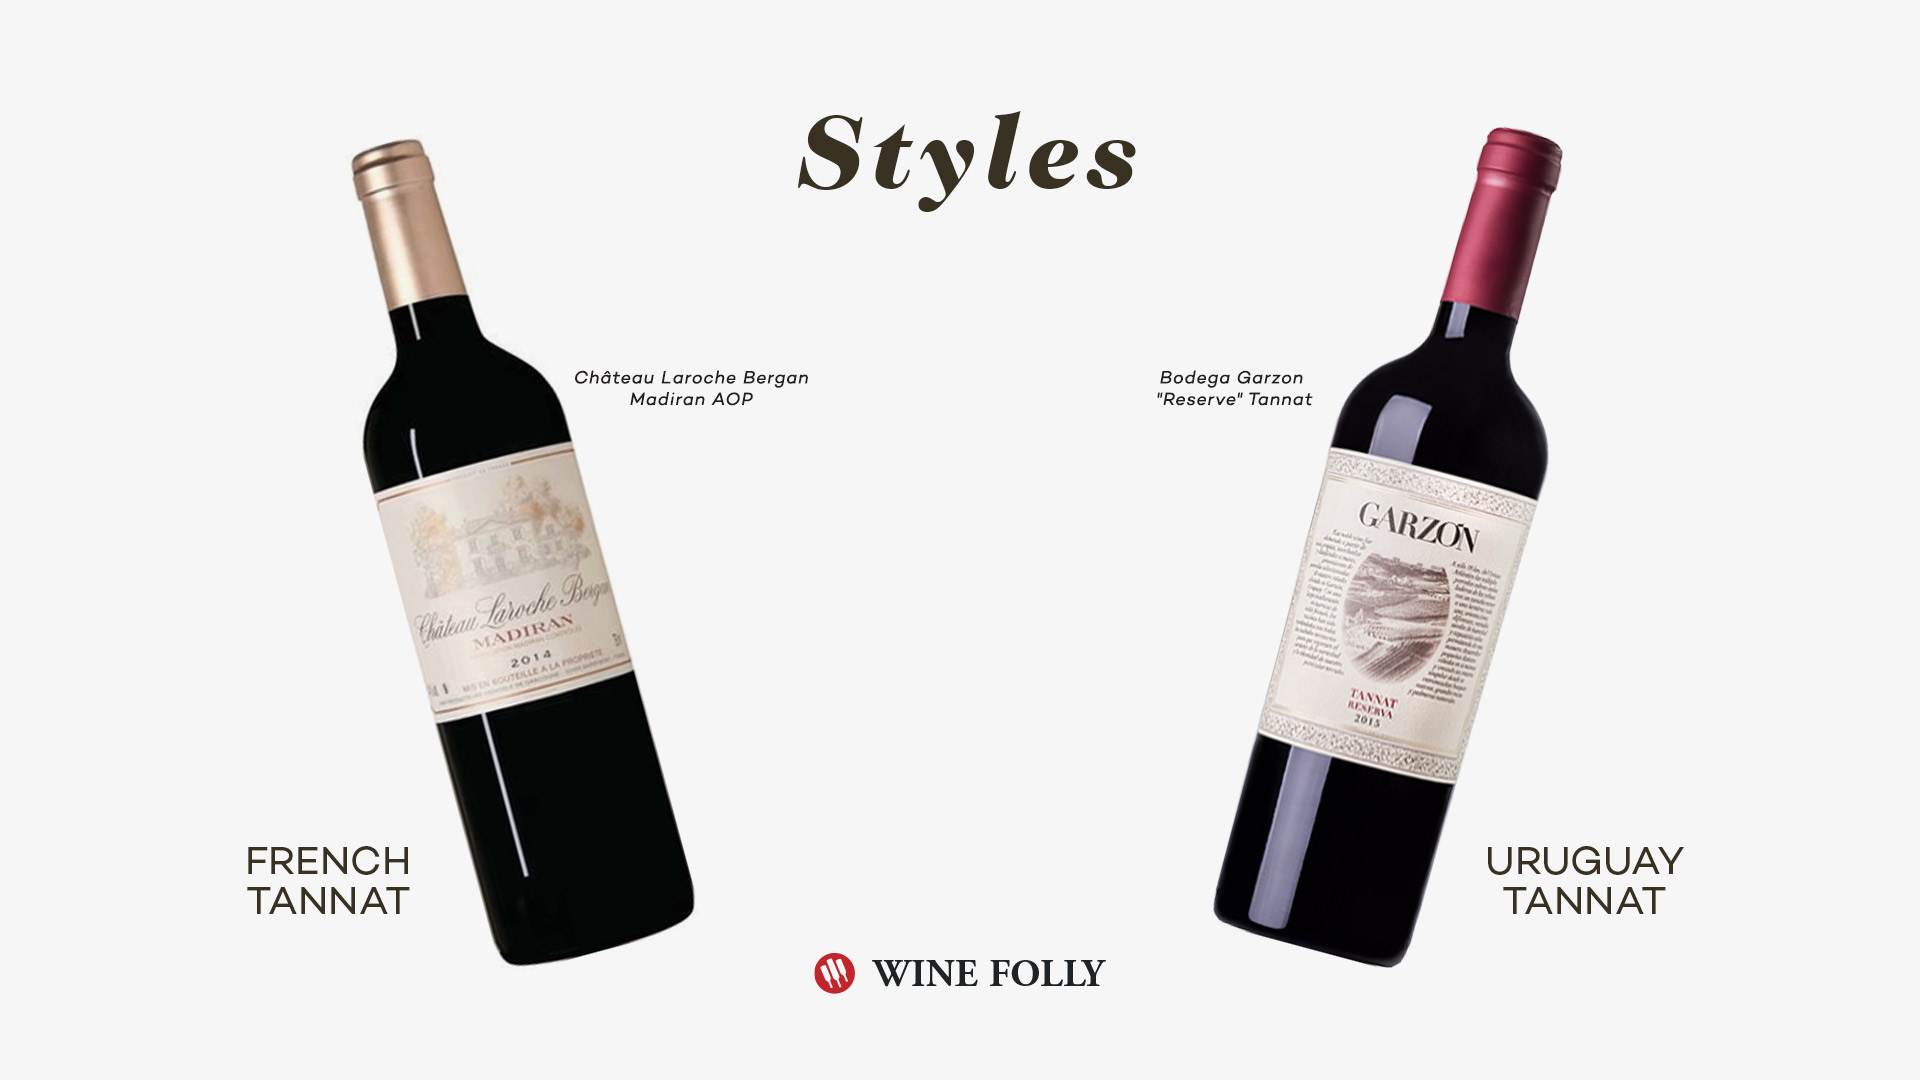 French-vs-Uruguay-Tannat-Wine-Bottles